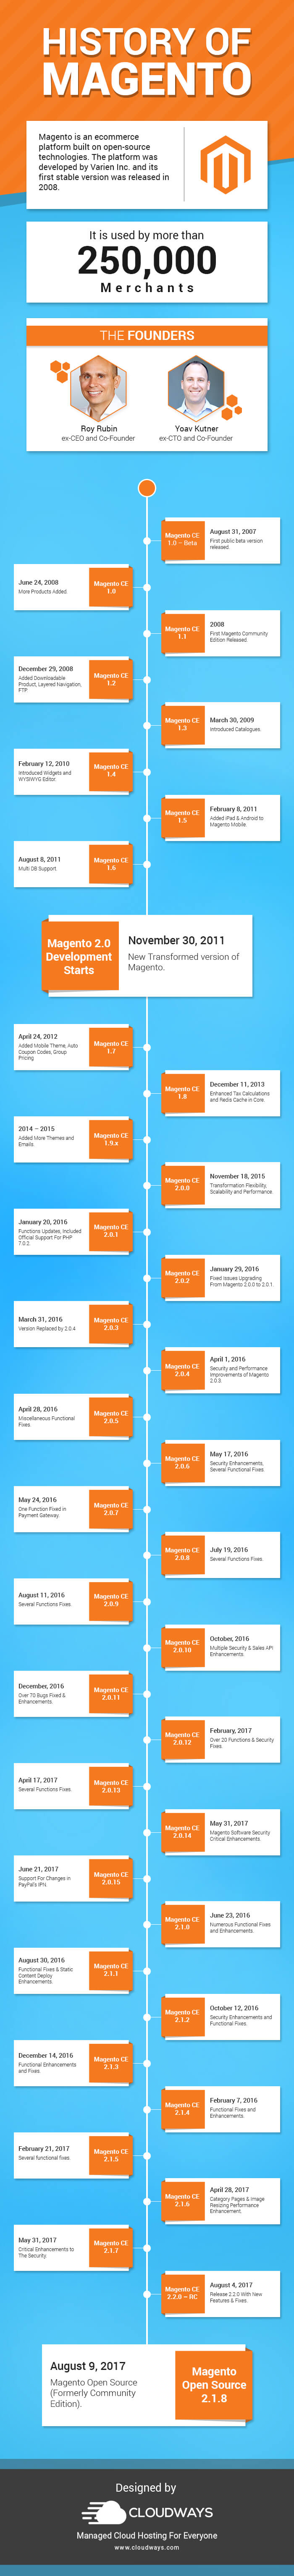 history-of-magento-infographic-galleryr